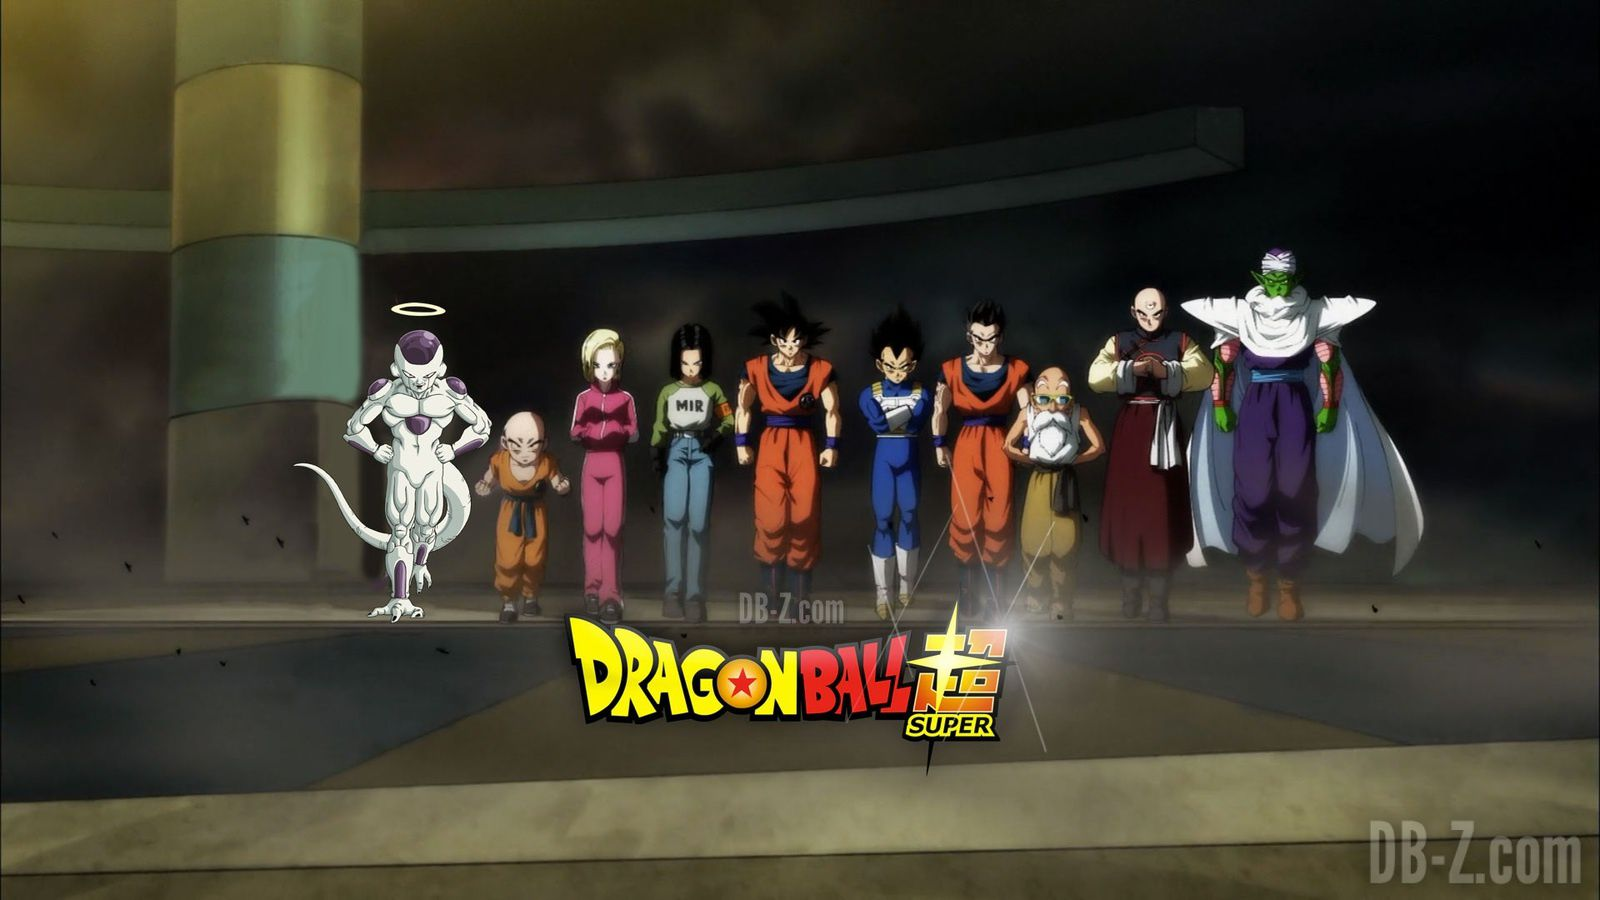 [SPOILER] Dragon Ball Super : Le retour du tyran!